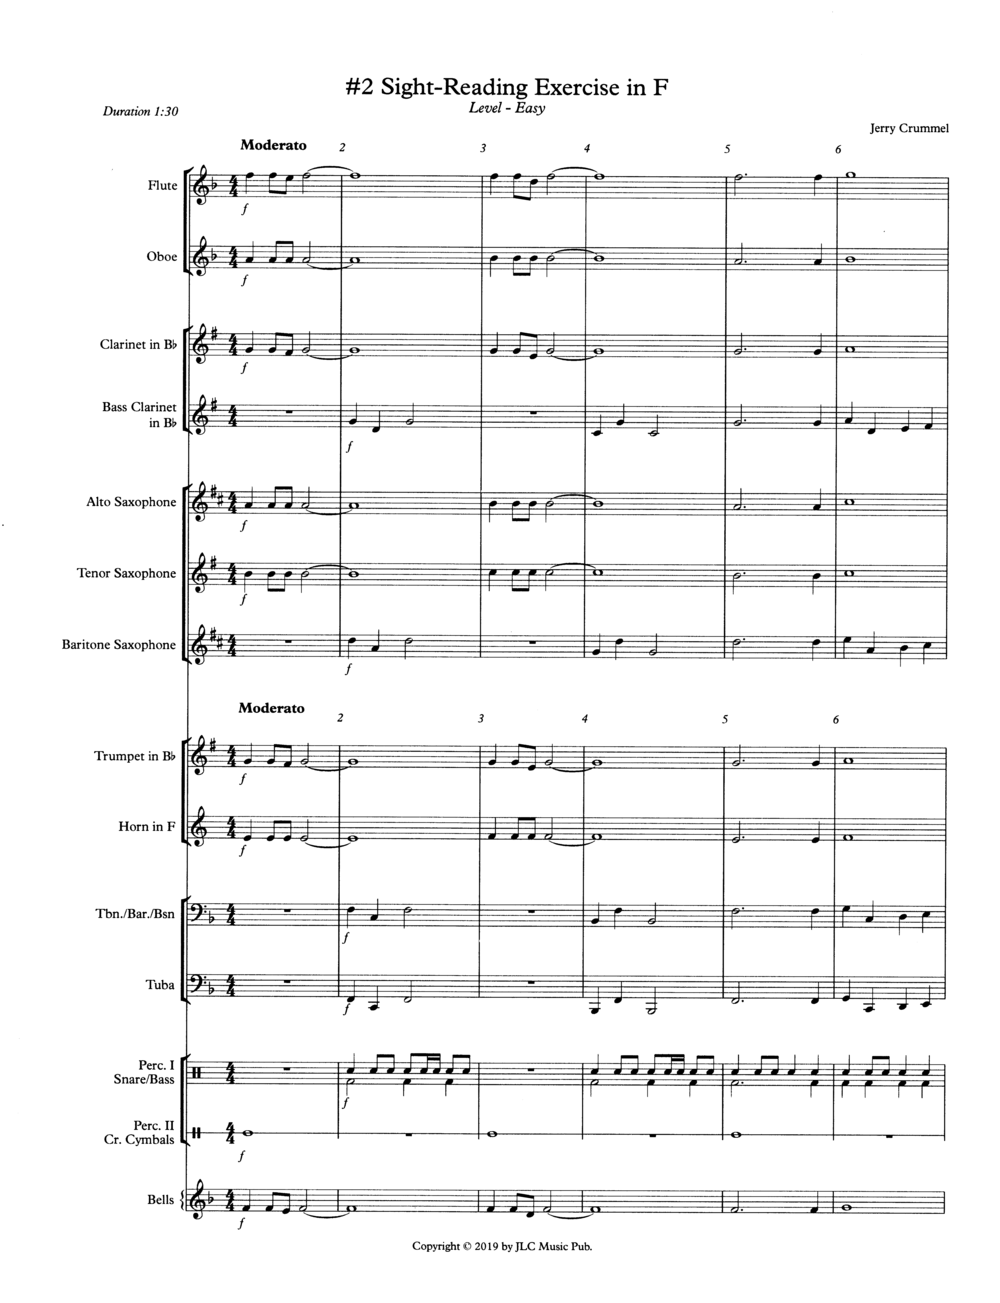 #2 Sight-Reading Exercise in F02122019.png